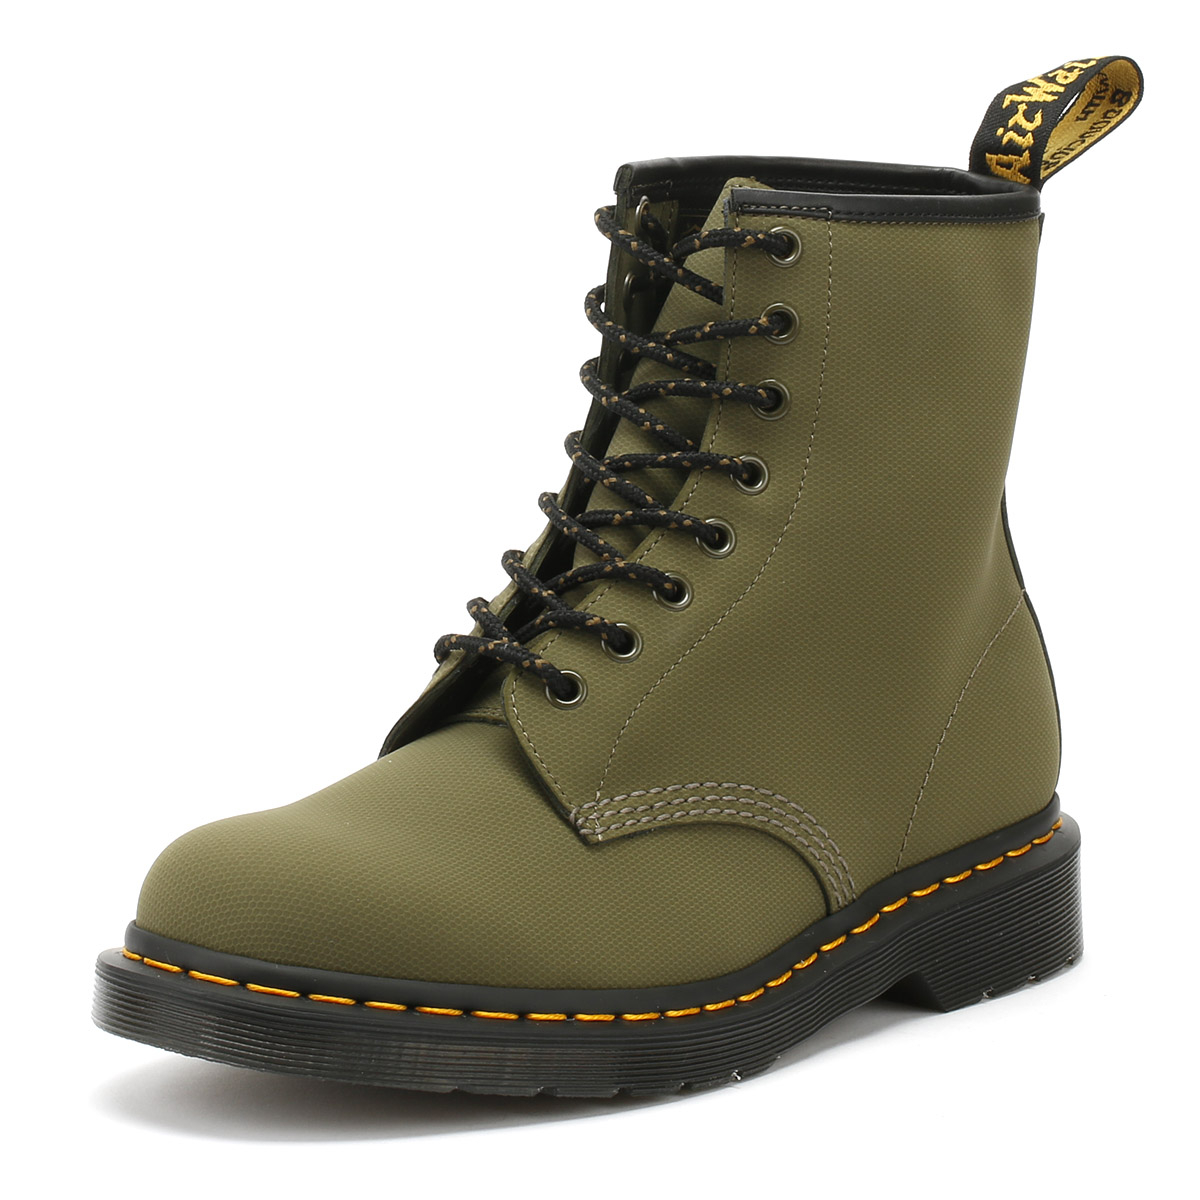 800303a07b Details about Dr. Martens Mens Ankle Boots DMs Olive Taupe Green Broder  1460 Lace Up Shoes